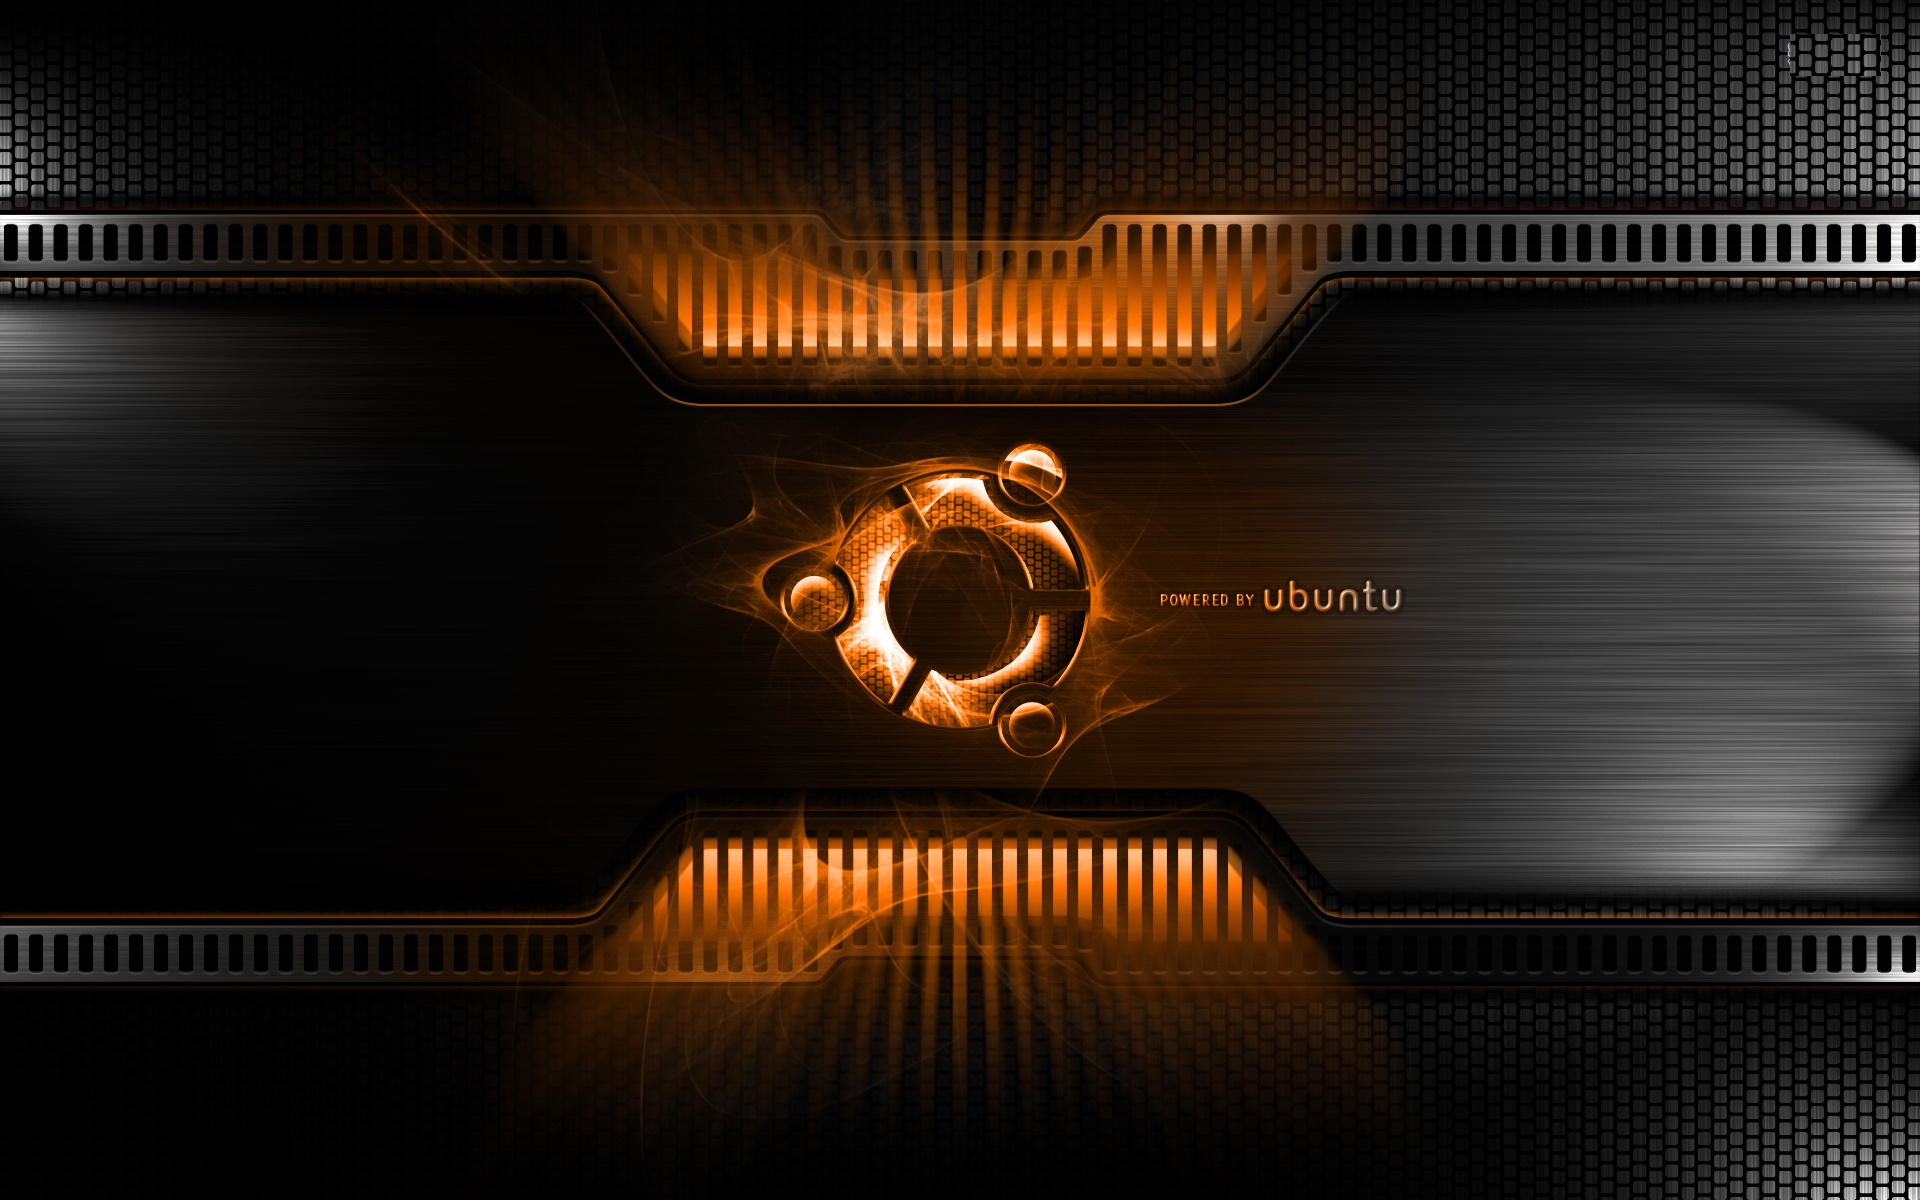 Ubuntu Wallpapers HD 1920x1200